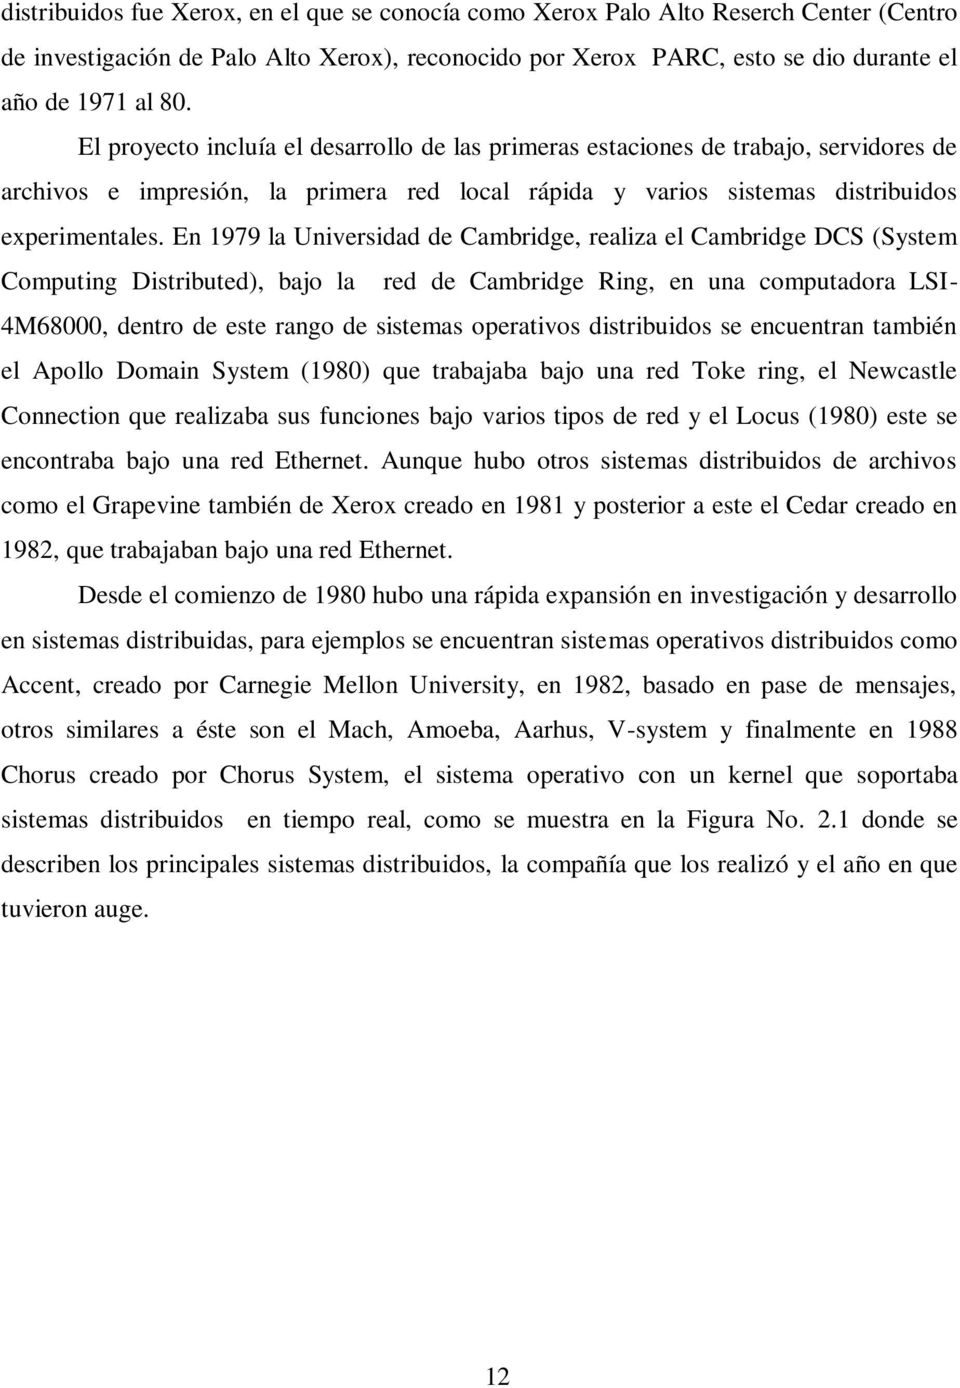 En 1979 la Universidad de Cambridge, realiza el Cambridge DCS (System Computing Distributed), bajo la red de Cambridge Ring, en una computadora LSI- 4M68000, dentro de este rango de sistemas